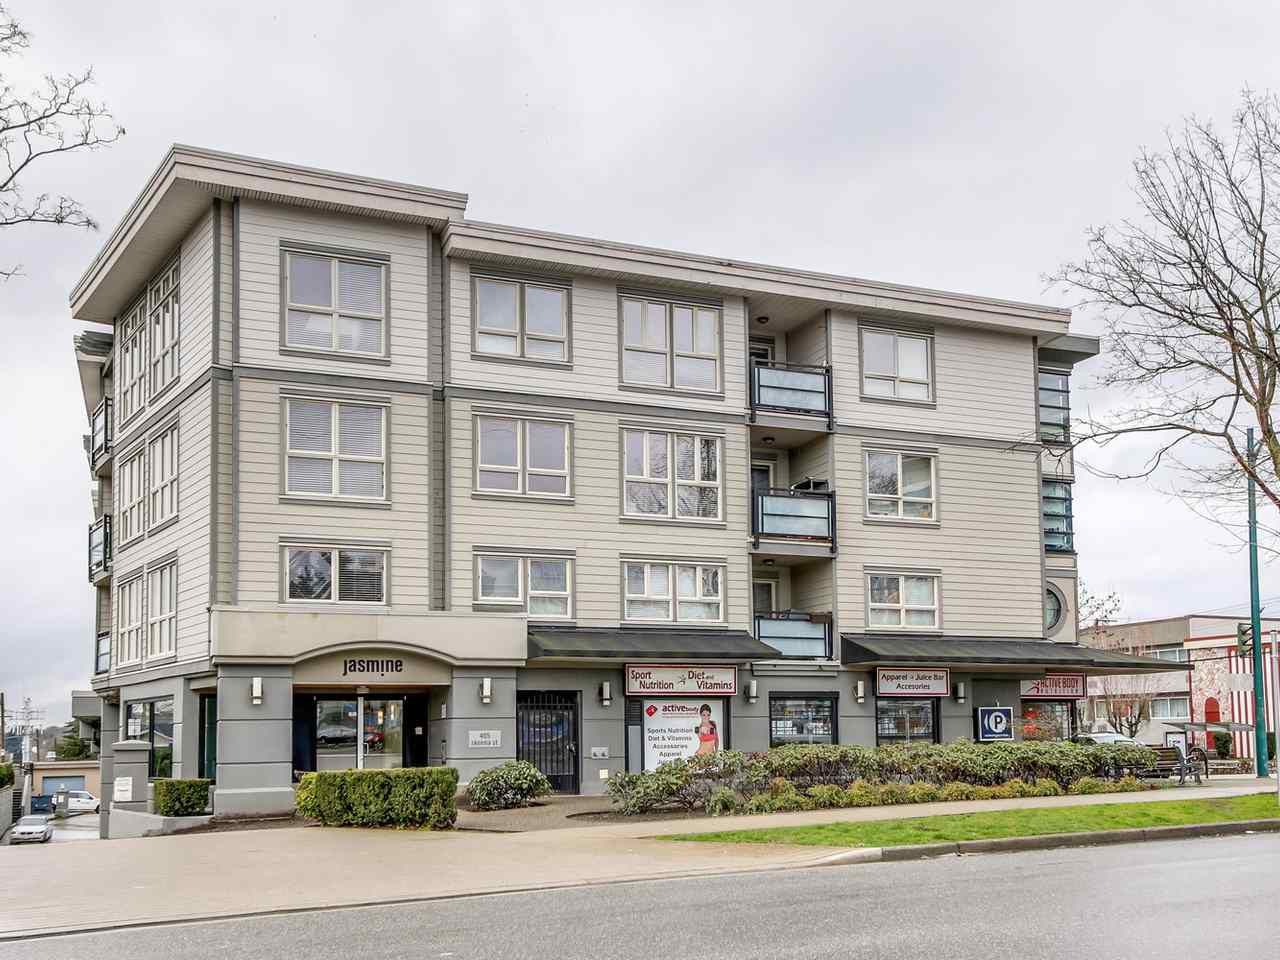 "Main Photo: 304 405 SKEENA Street in Vancouver: Renfrew VE Condo for sale in ""THE JASMINE"" (Vancouver East)  : MLS®# R2150679"